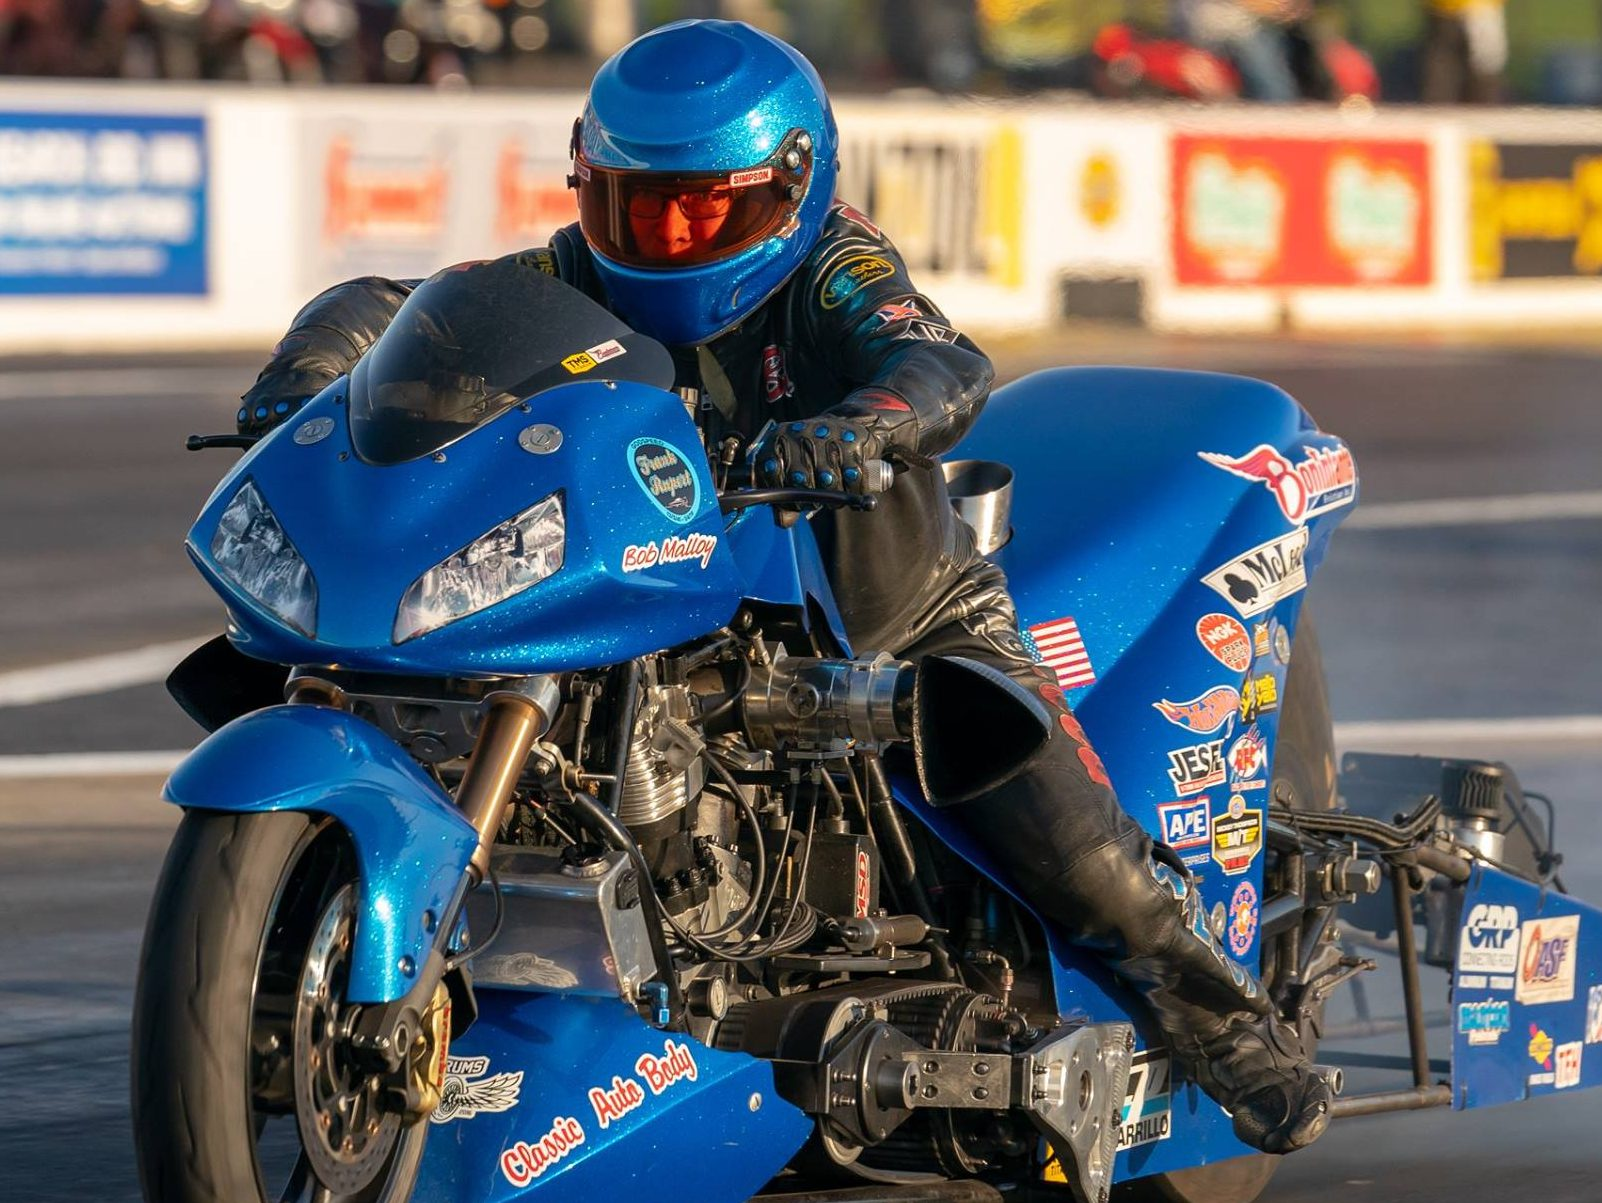 Bob Malloy Top Fuel Harley